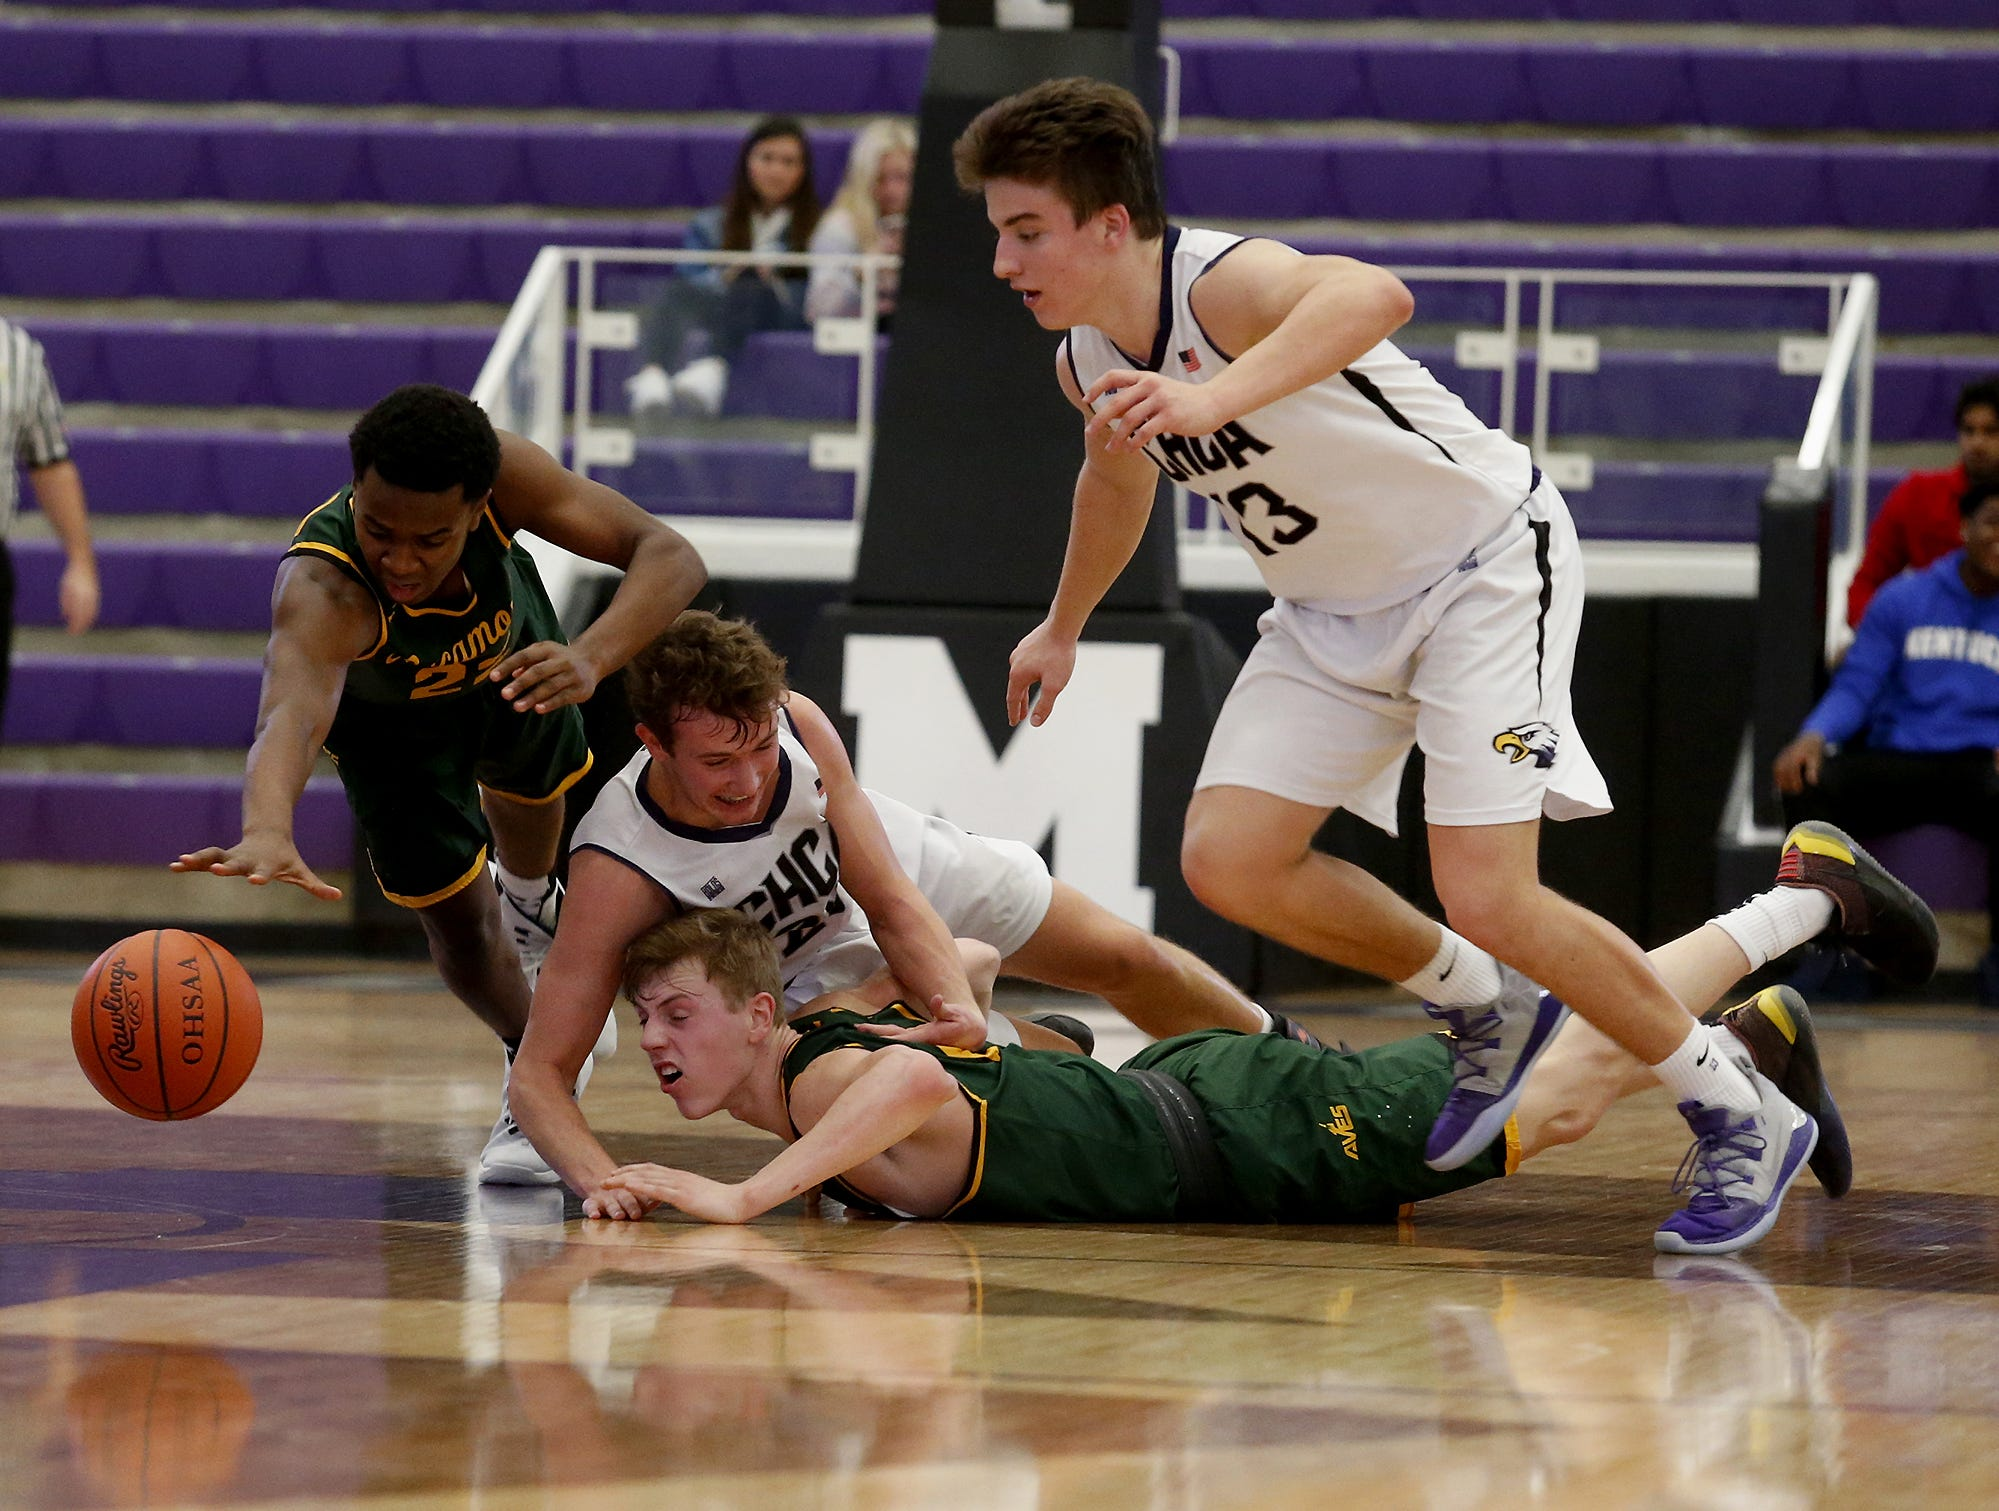 Cincinnati Hills Christian Academy and Sycamore chase a loose ball during the Midwest King Classic at Jerry Lucas Court in Wade E. Miller Arena in Middletown Saturday, Jan. 19, 2019.